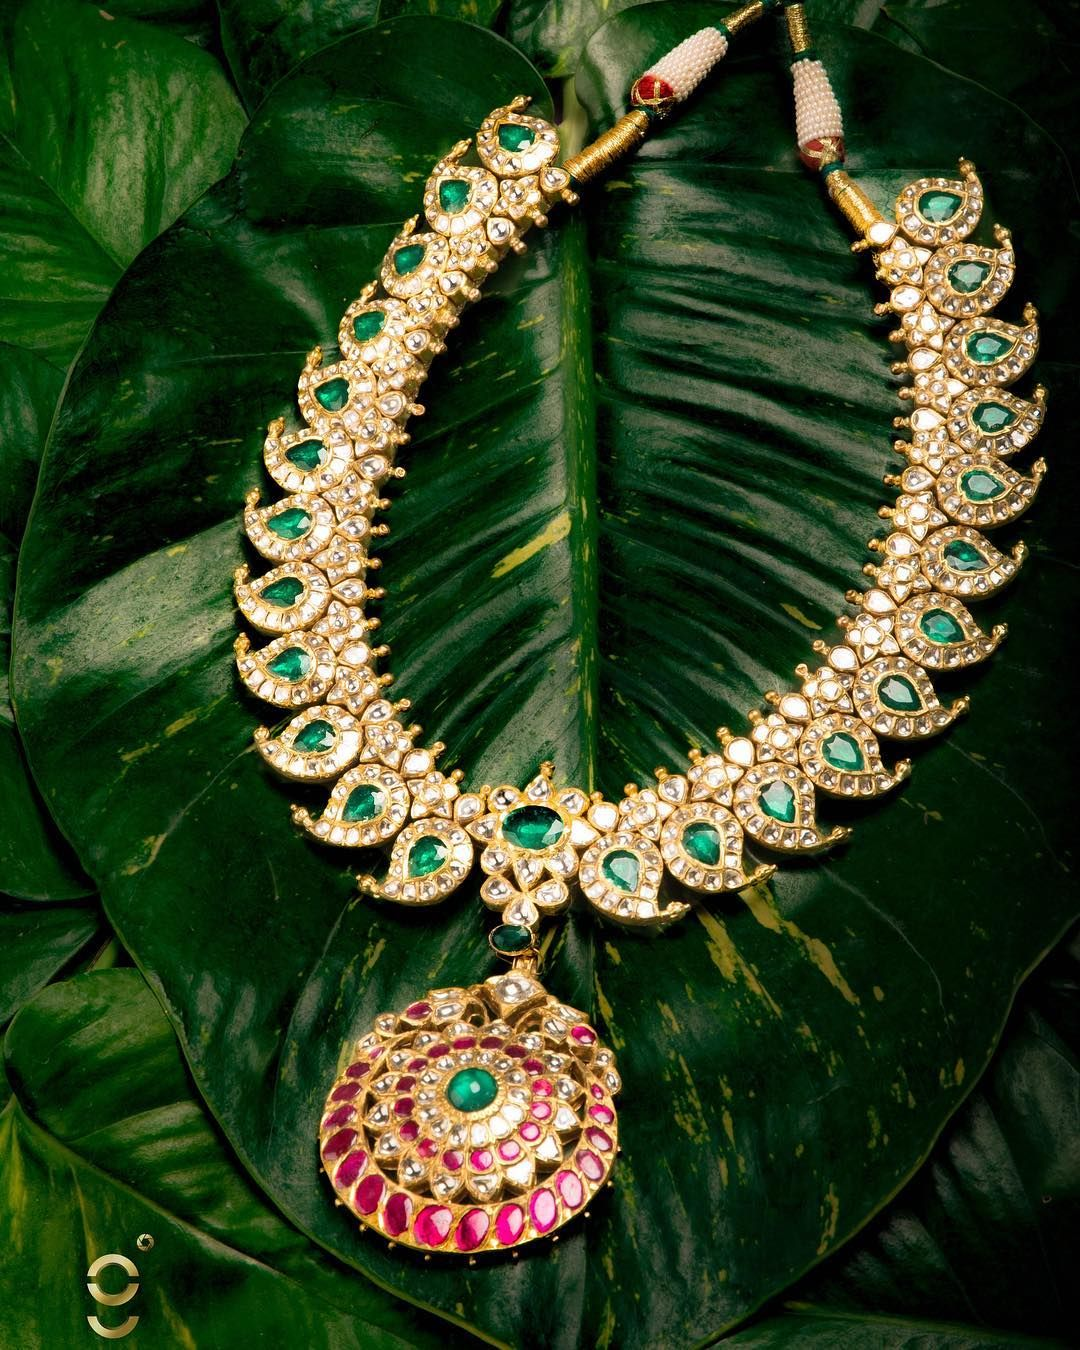 Malabar Jewellery Ruby - Year of Clean Water